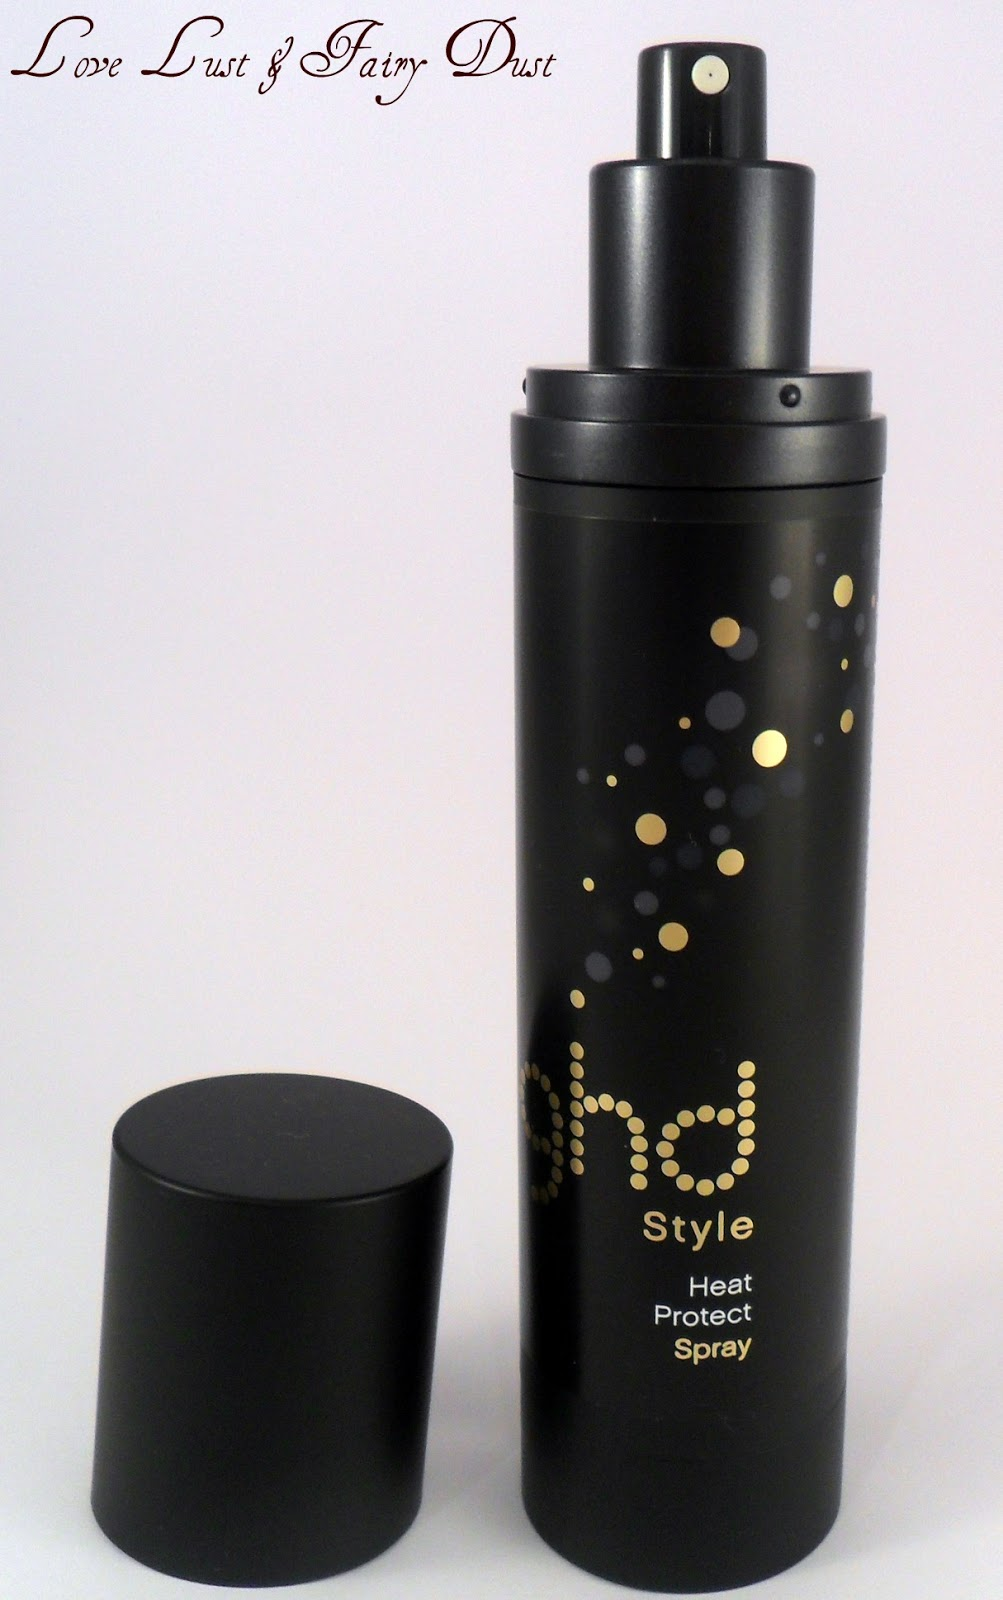 GHD Heat Protect Spray review